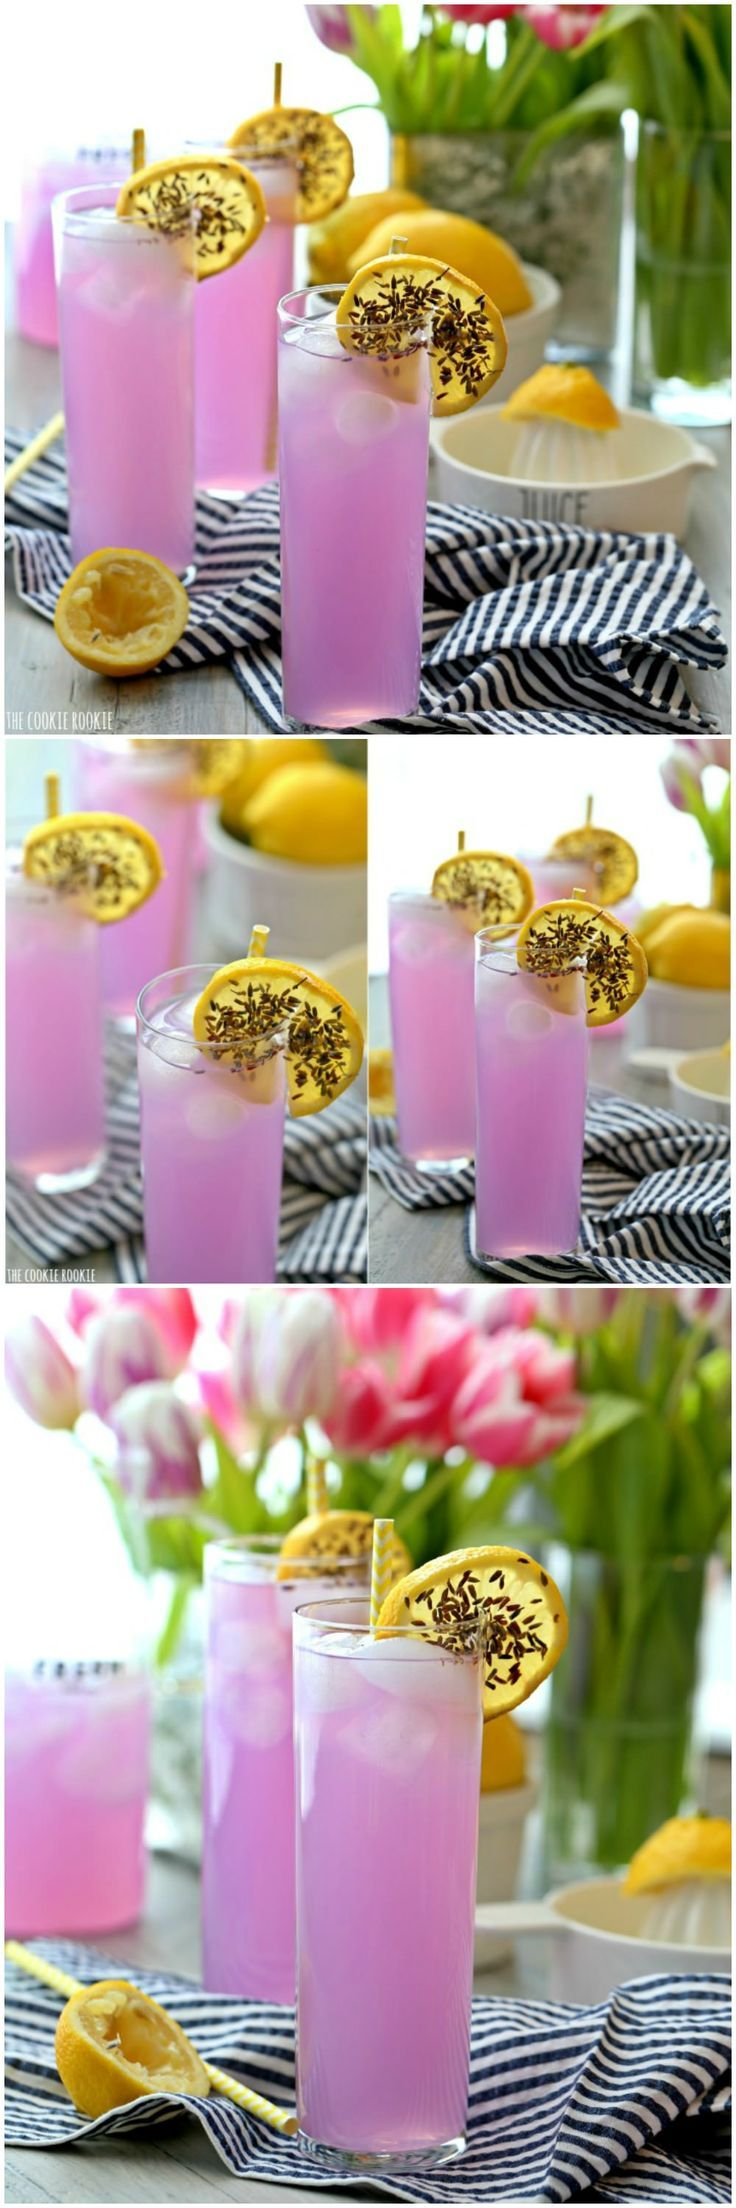 Lavender Lemonade is a beautiful and fragrant way to enjoy your Lemonade now that the weather is nice! Cheers! (Gluten Free Recipes For Party)